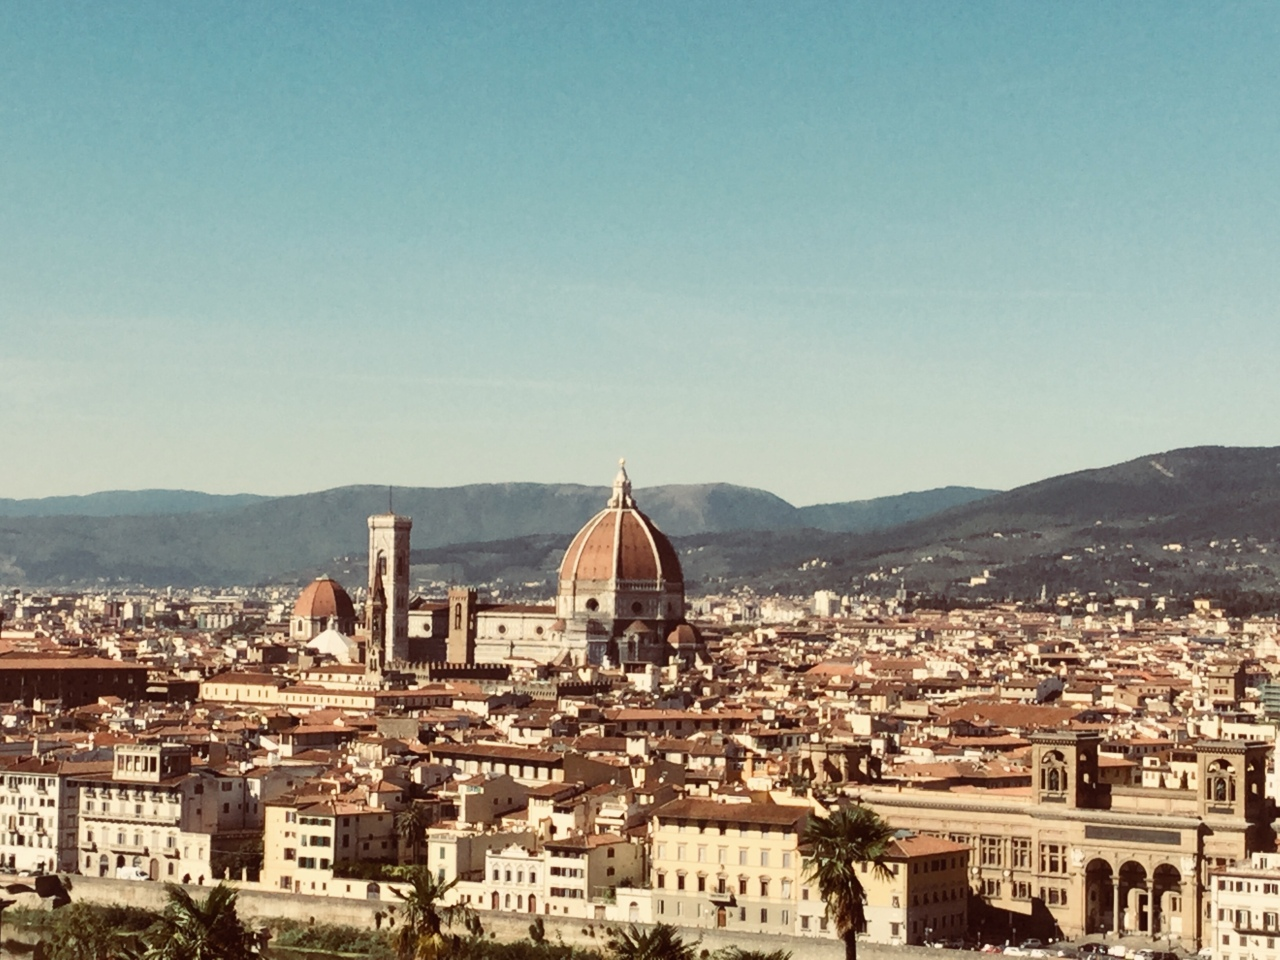 Four nights in Firenze, by Christiana